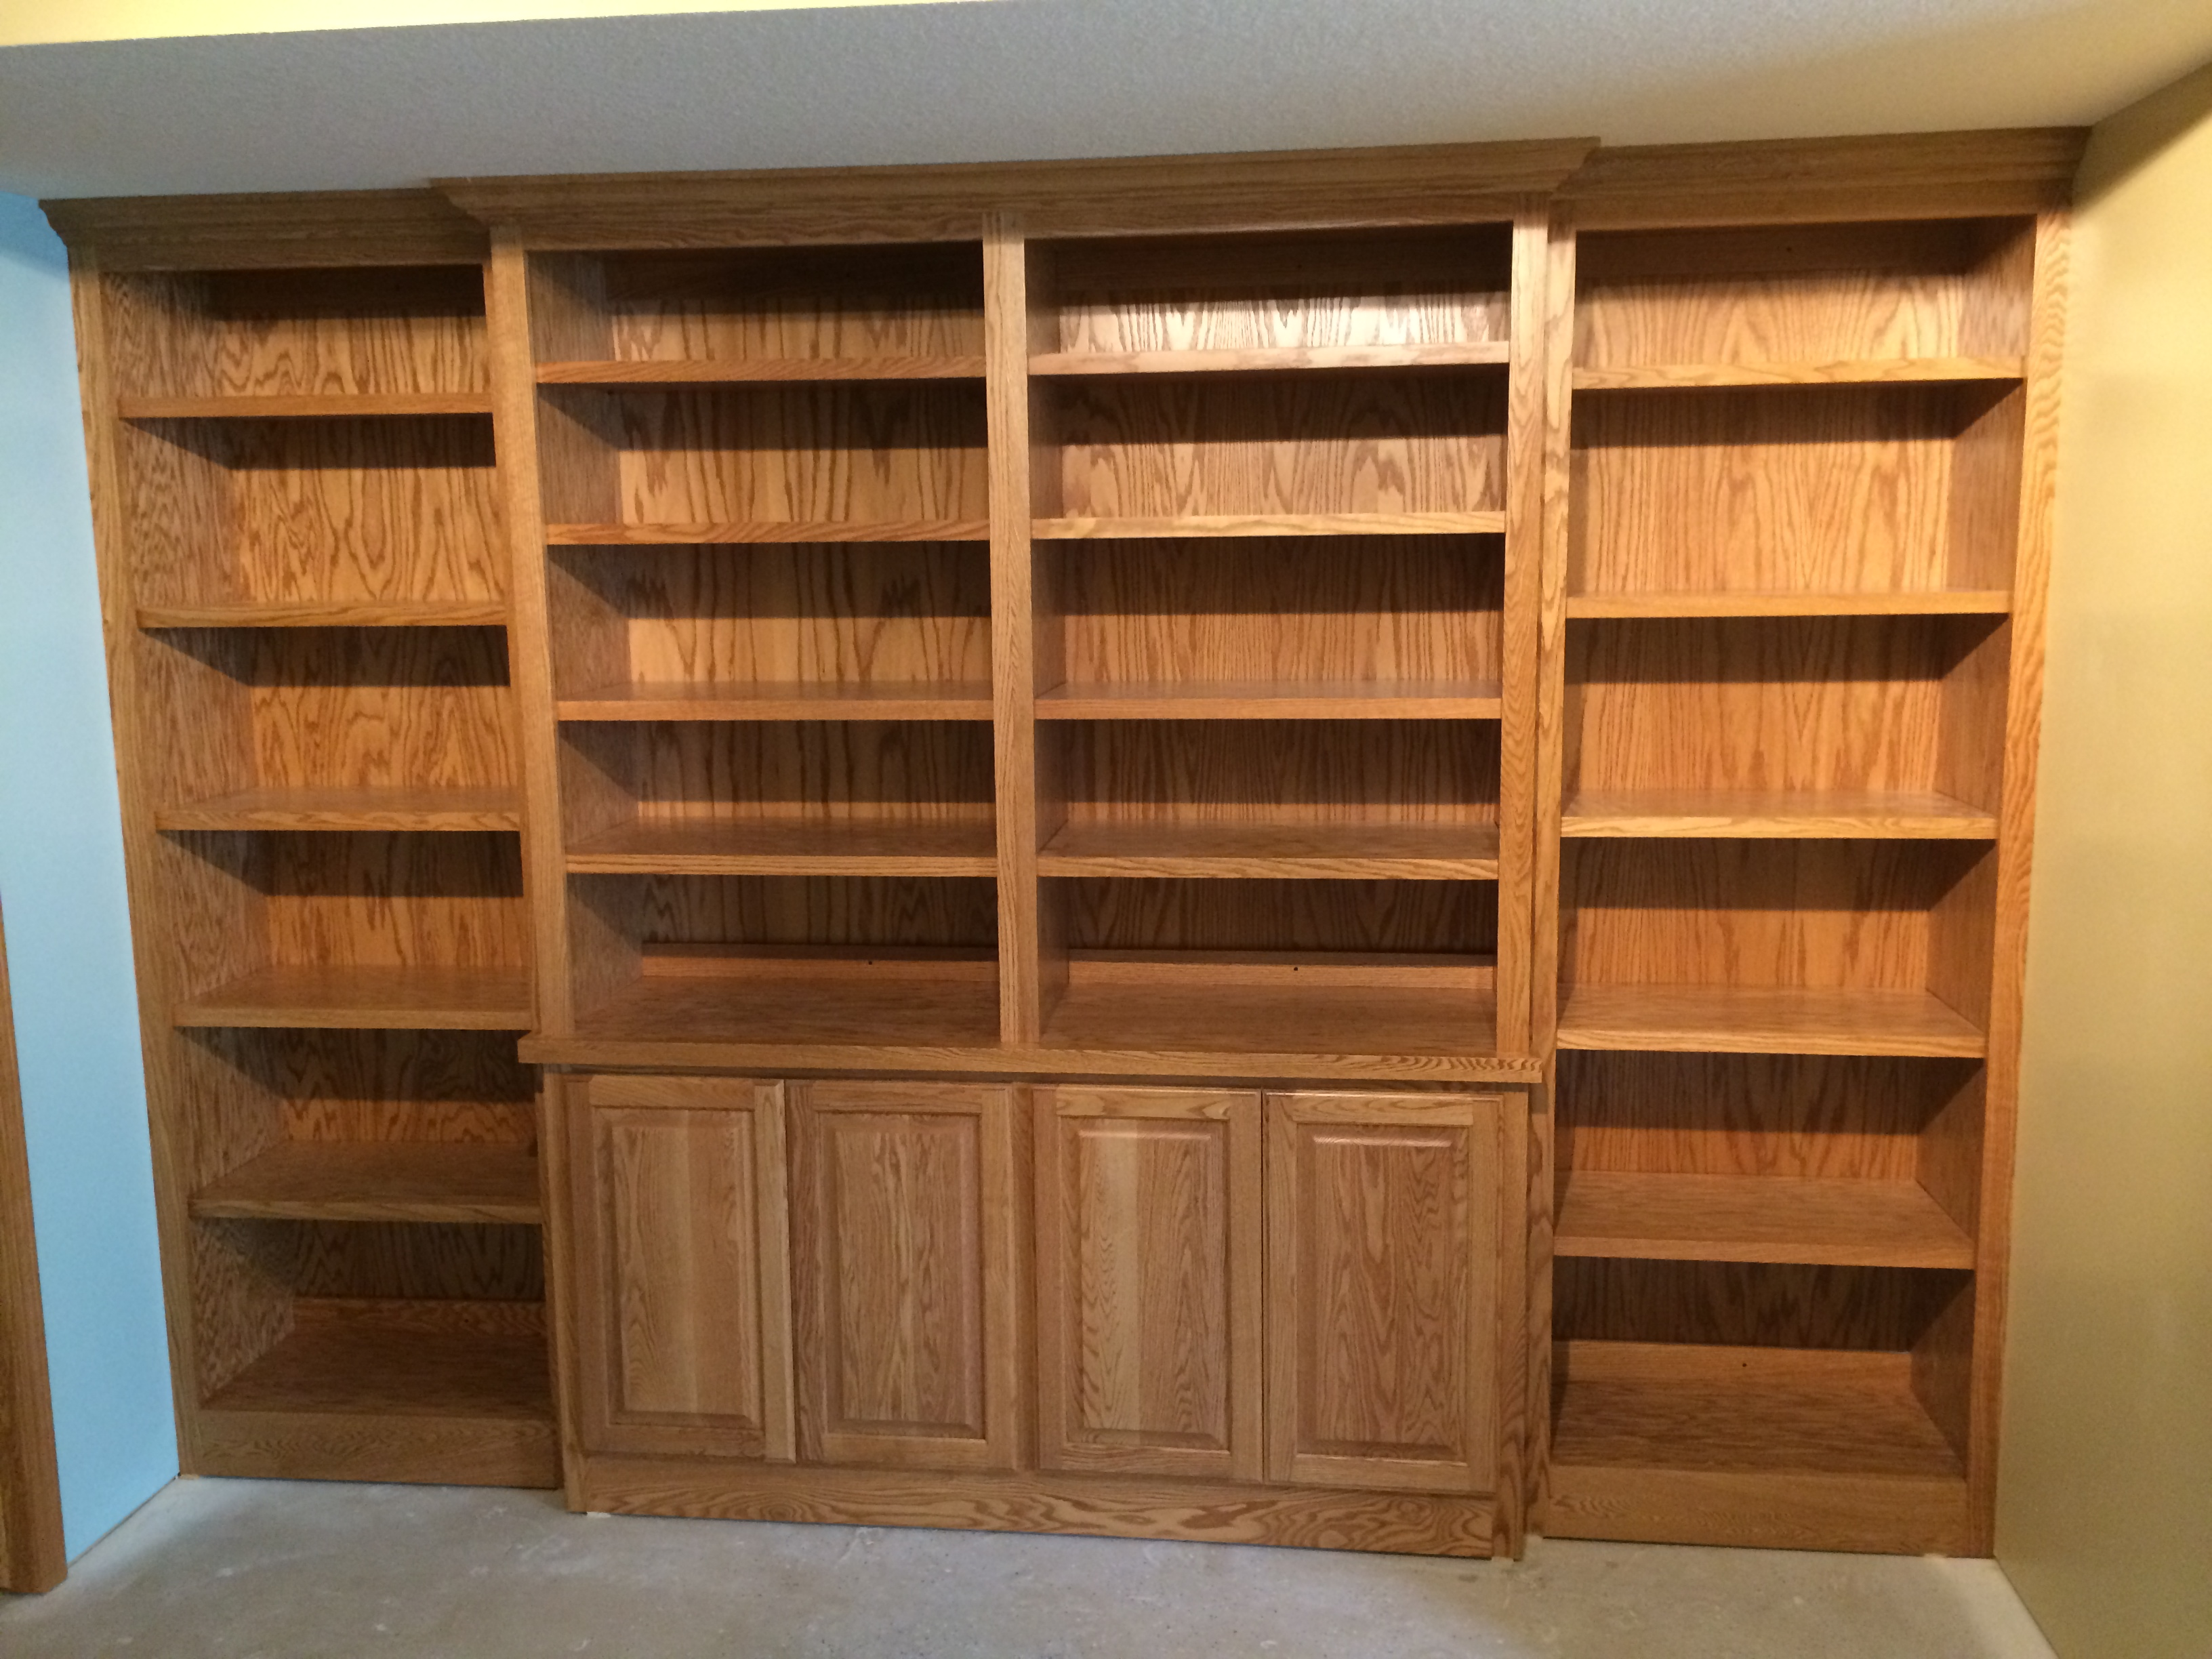 Valley custom cabinets basement remodel 1 this red oak built in bookcase with raised panel doors vtopaller Gallery